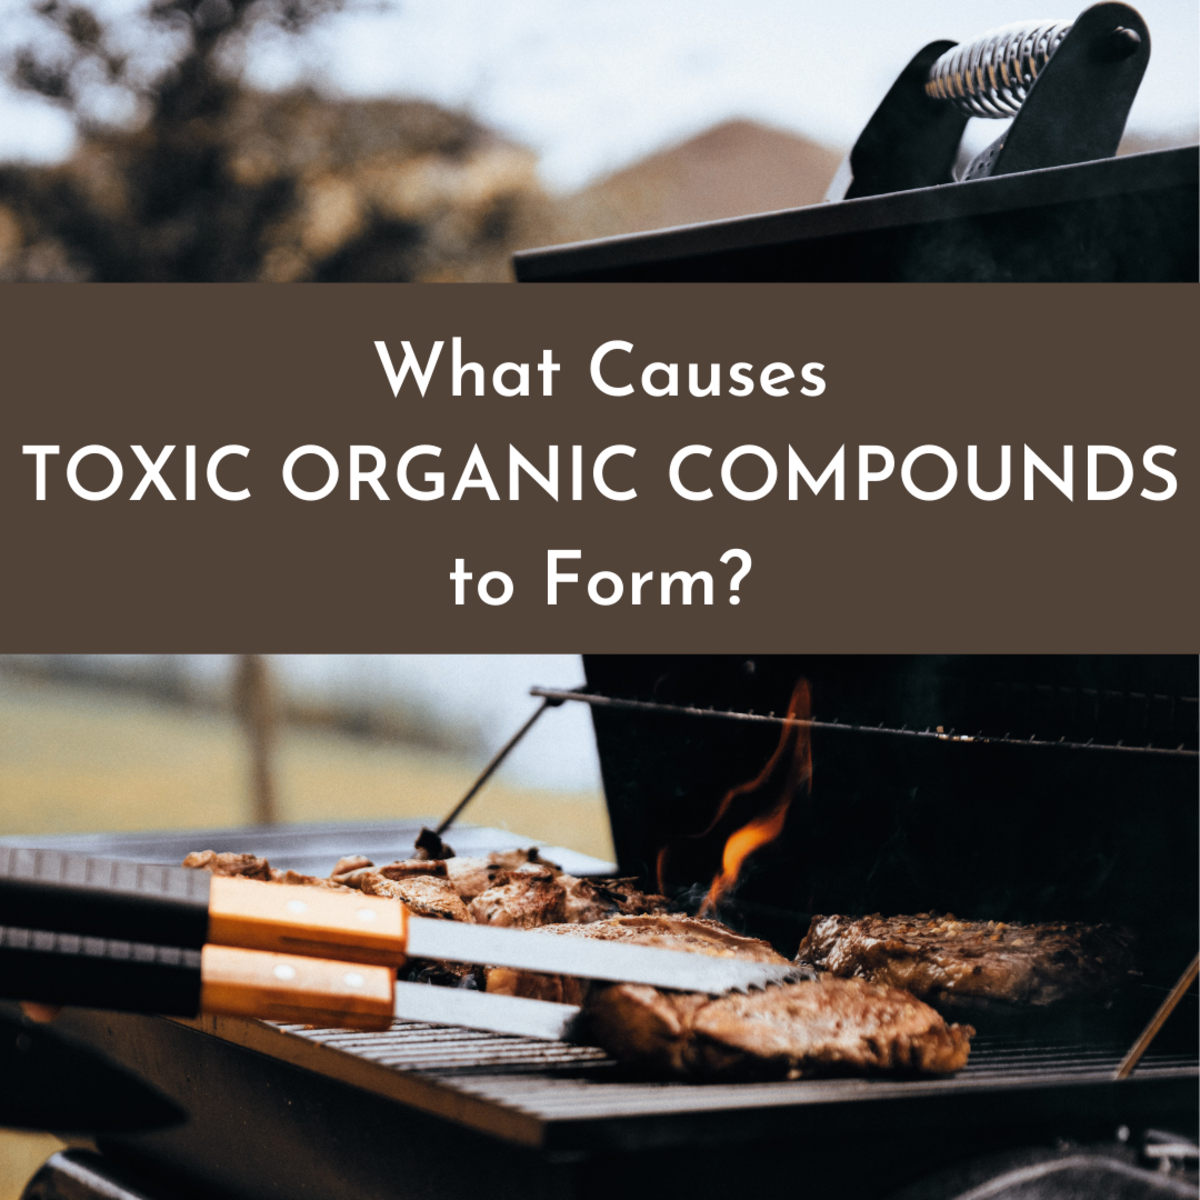 Learn about some of the unusual ways that toxic organic compounds can be formed, such as from barbecuing meat and treating water.